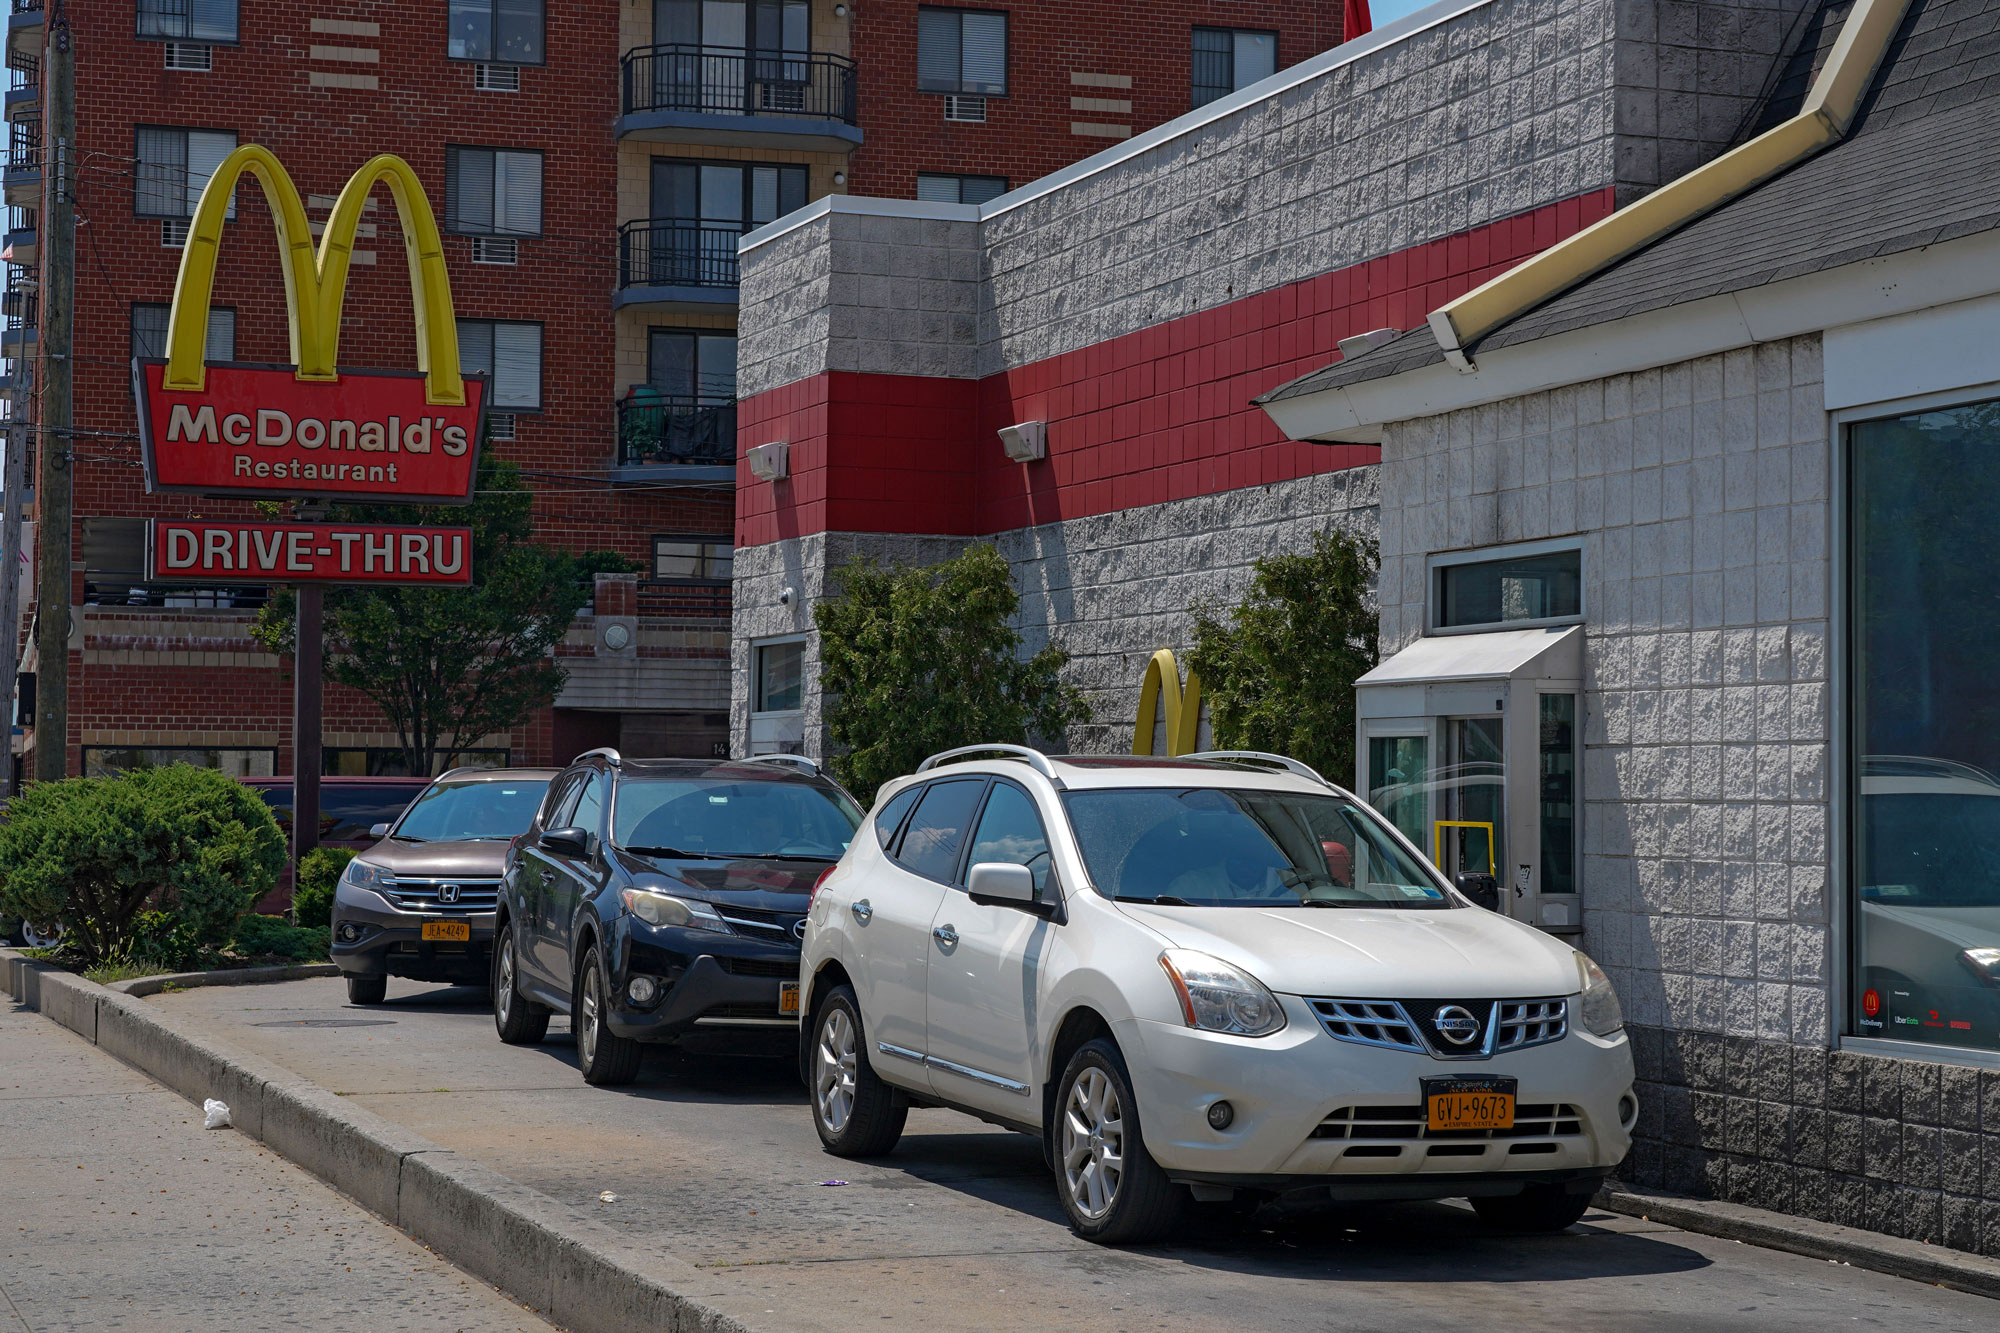 cars in line at a McDonald's drive thru